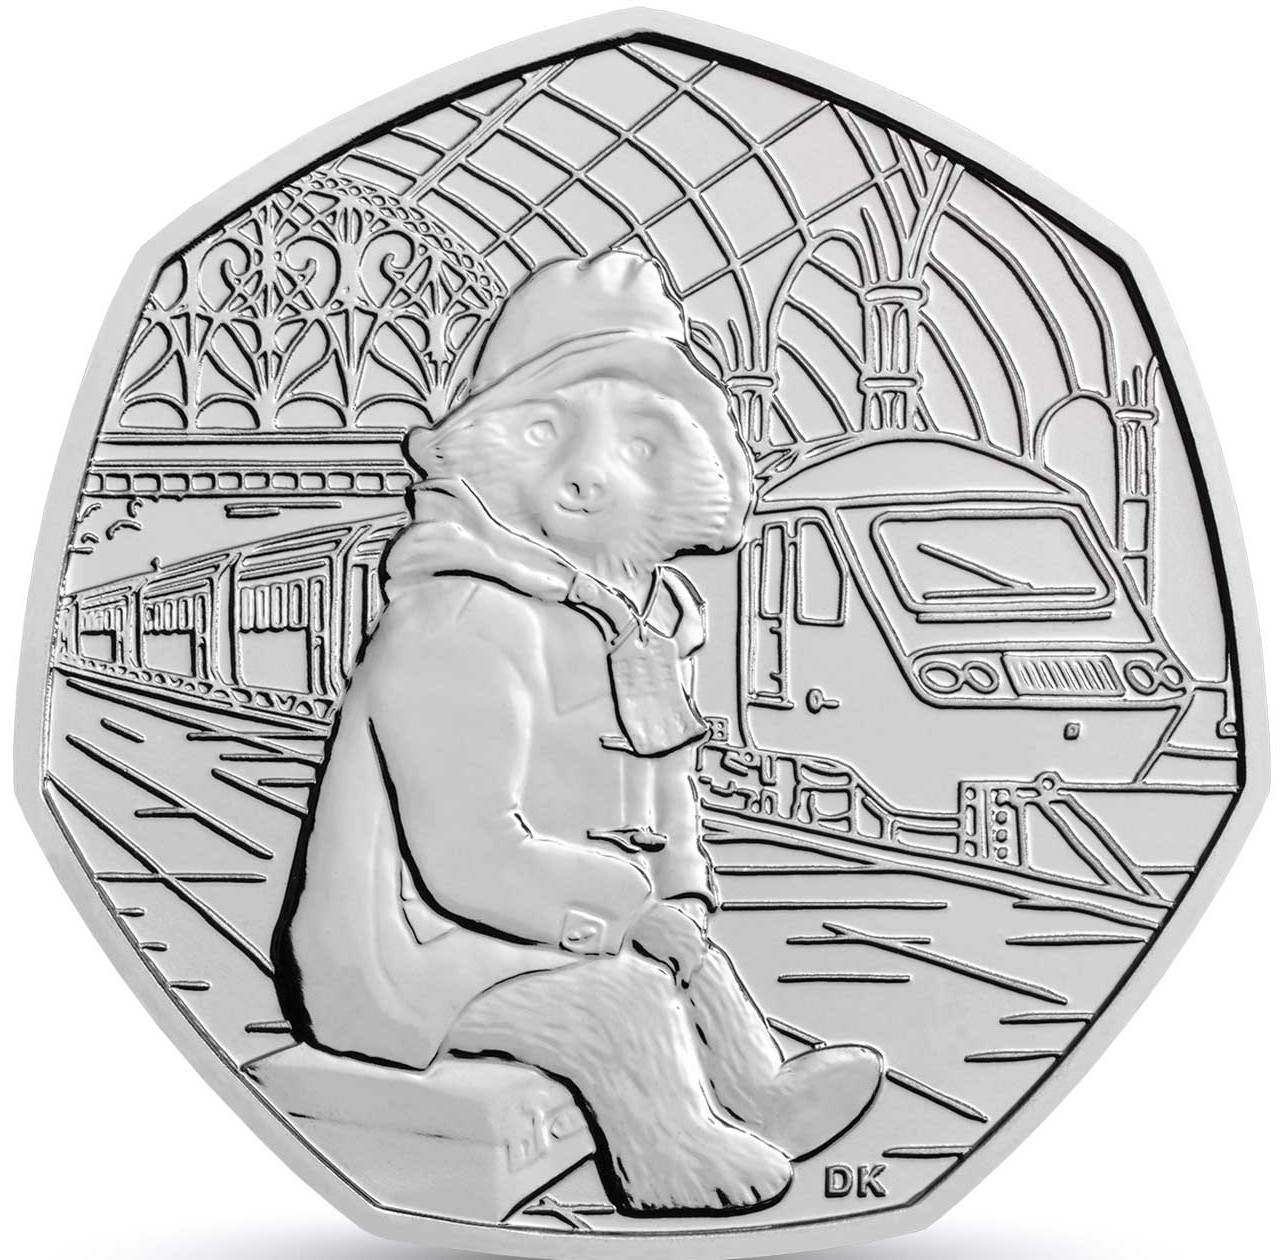 Fifty Pence 2018 Paddington Bear at the Station: Photo Paddington at the Station 2018 UK 50p Brilliant Uncirculated Coin